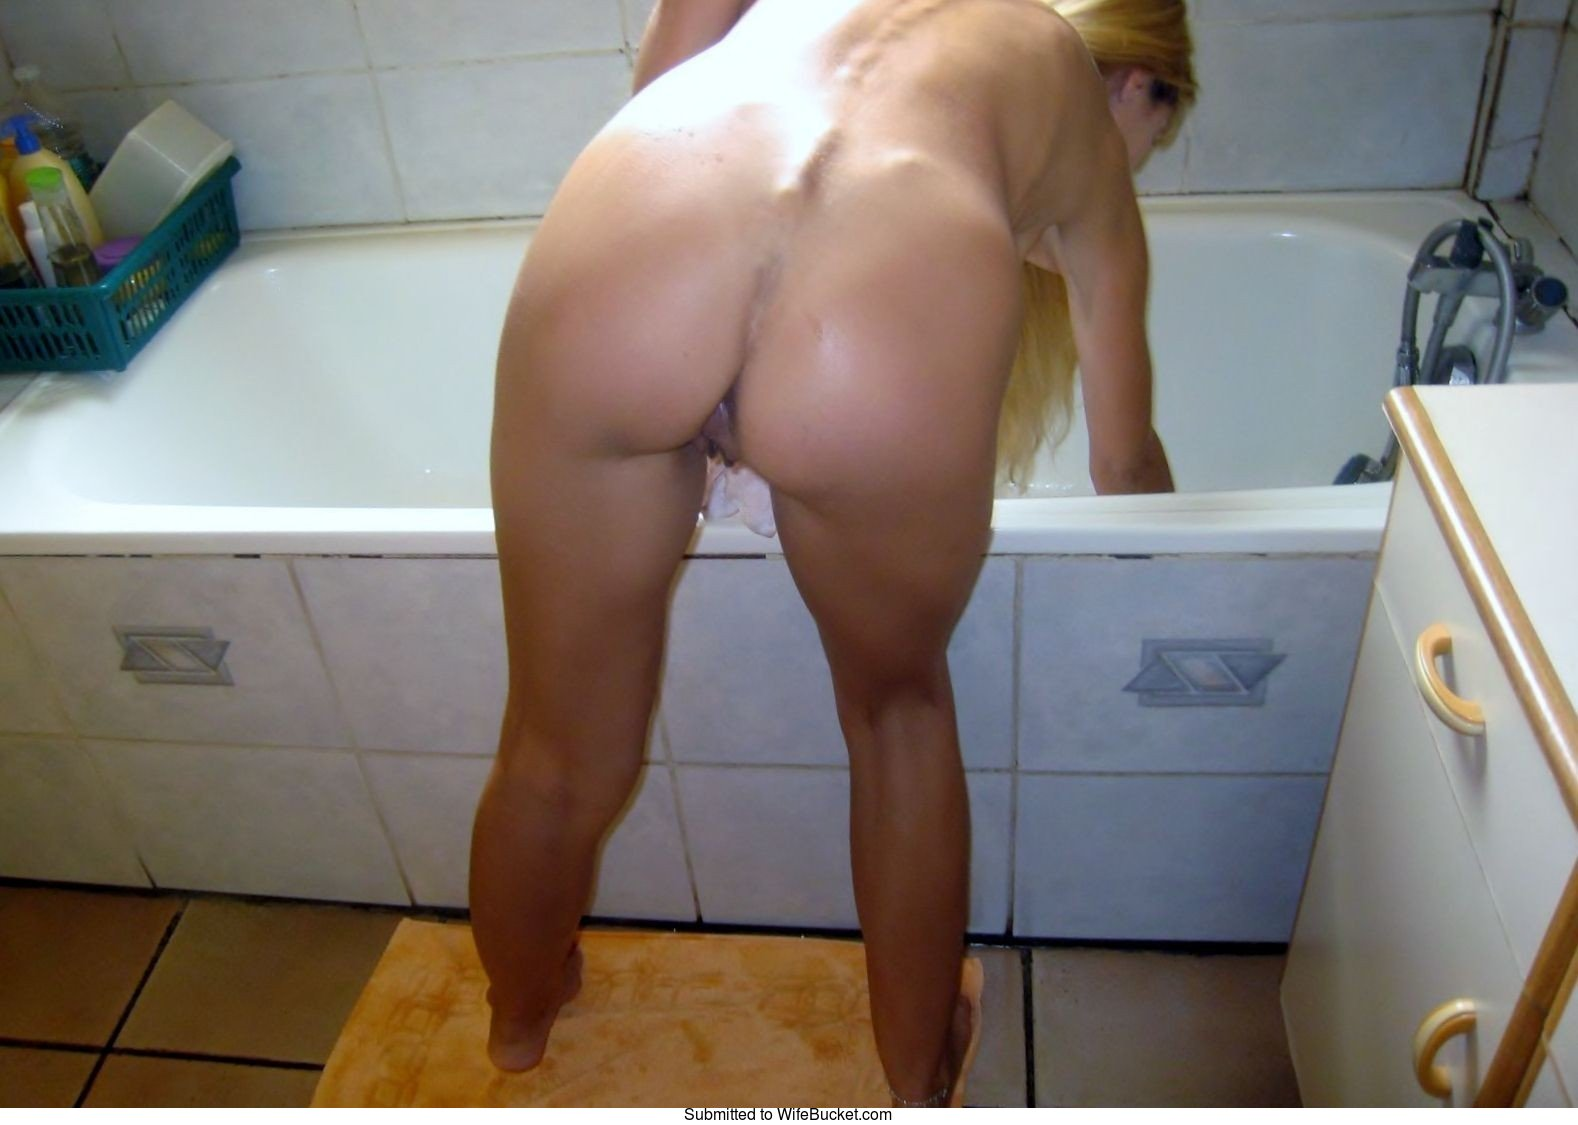 mature wife self pics nude